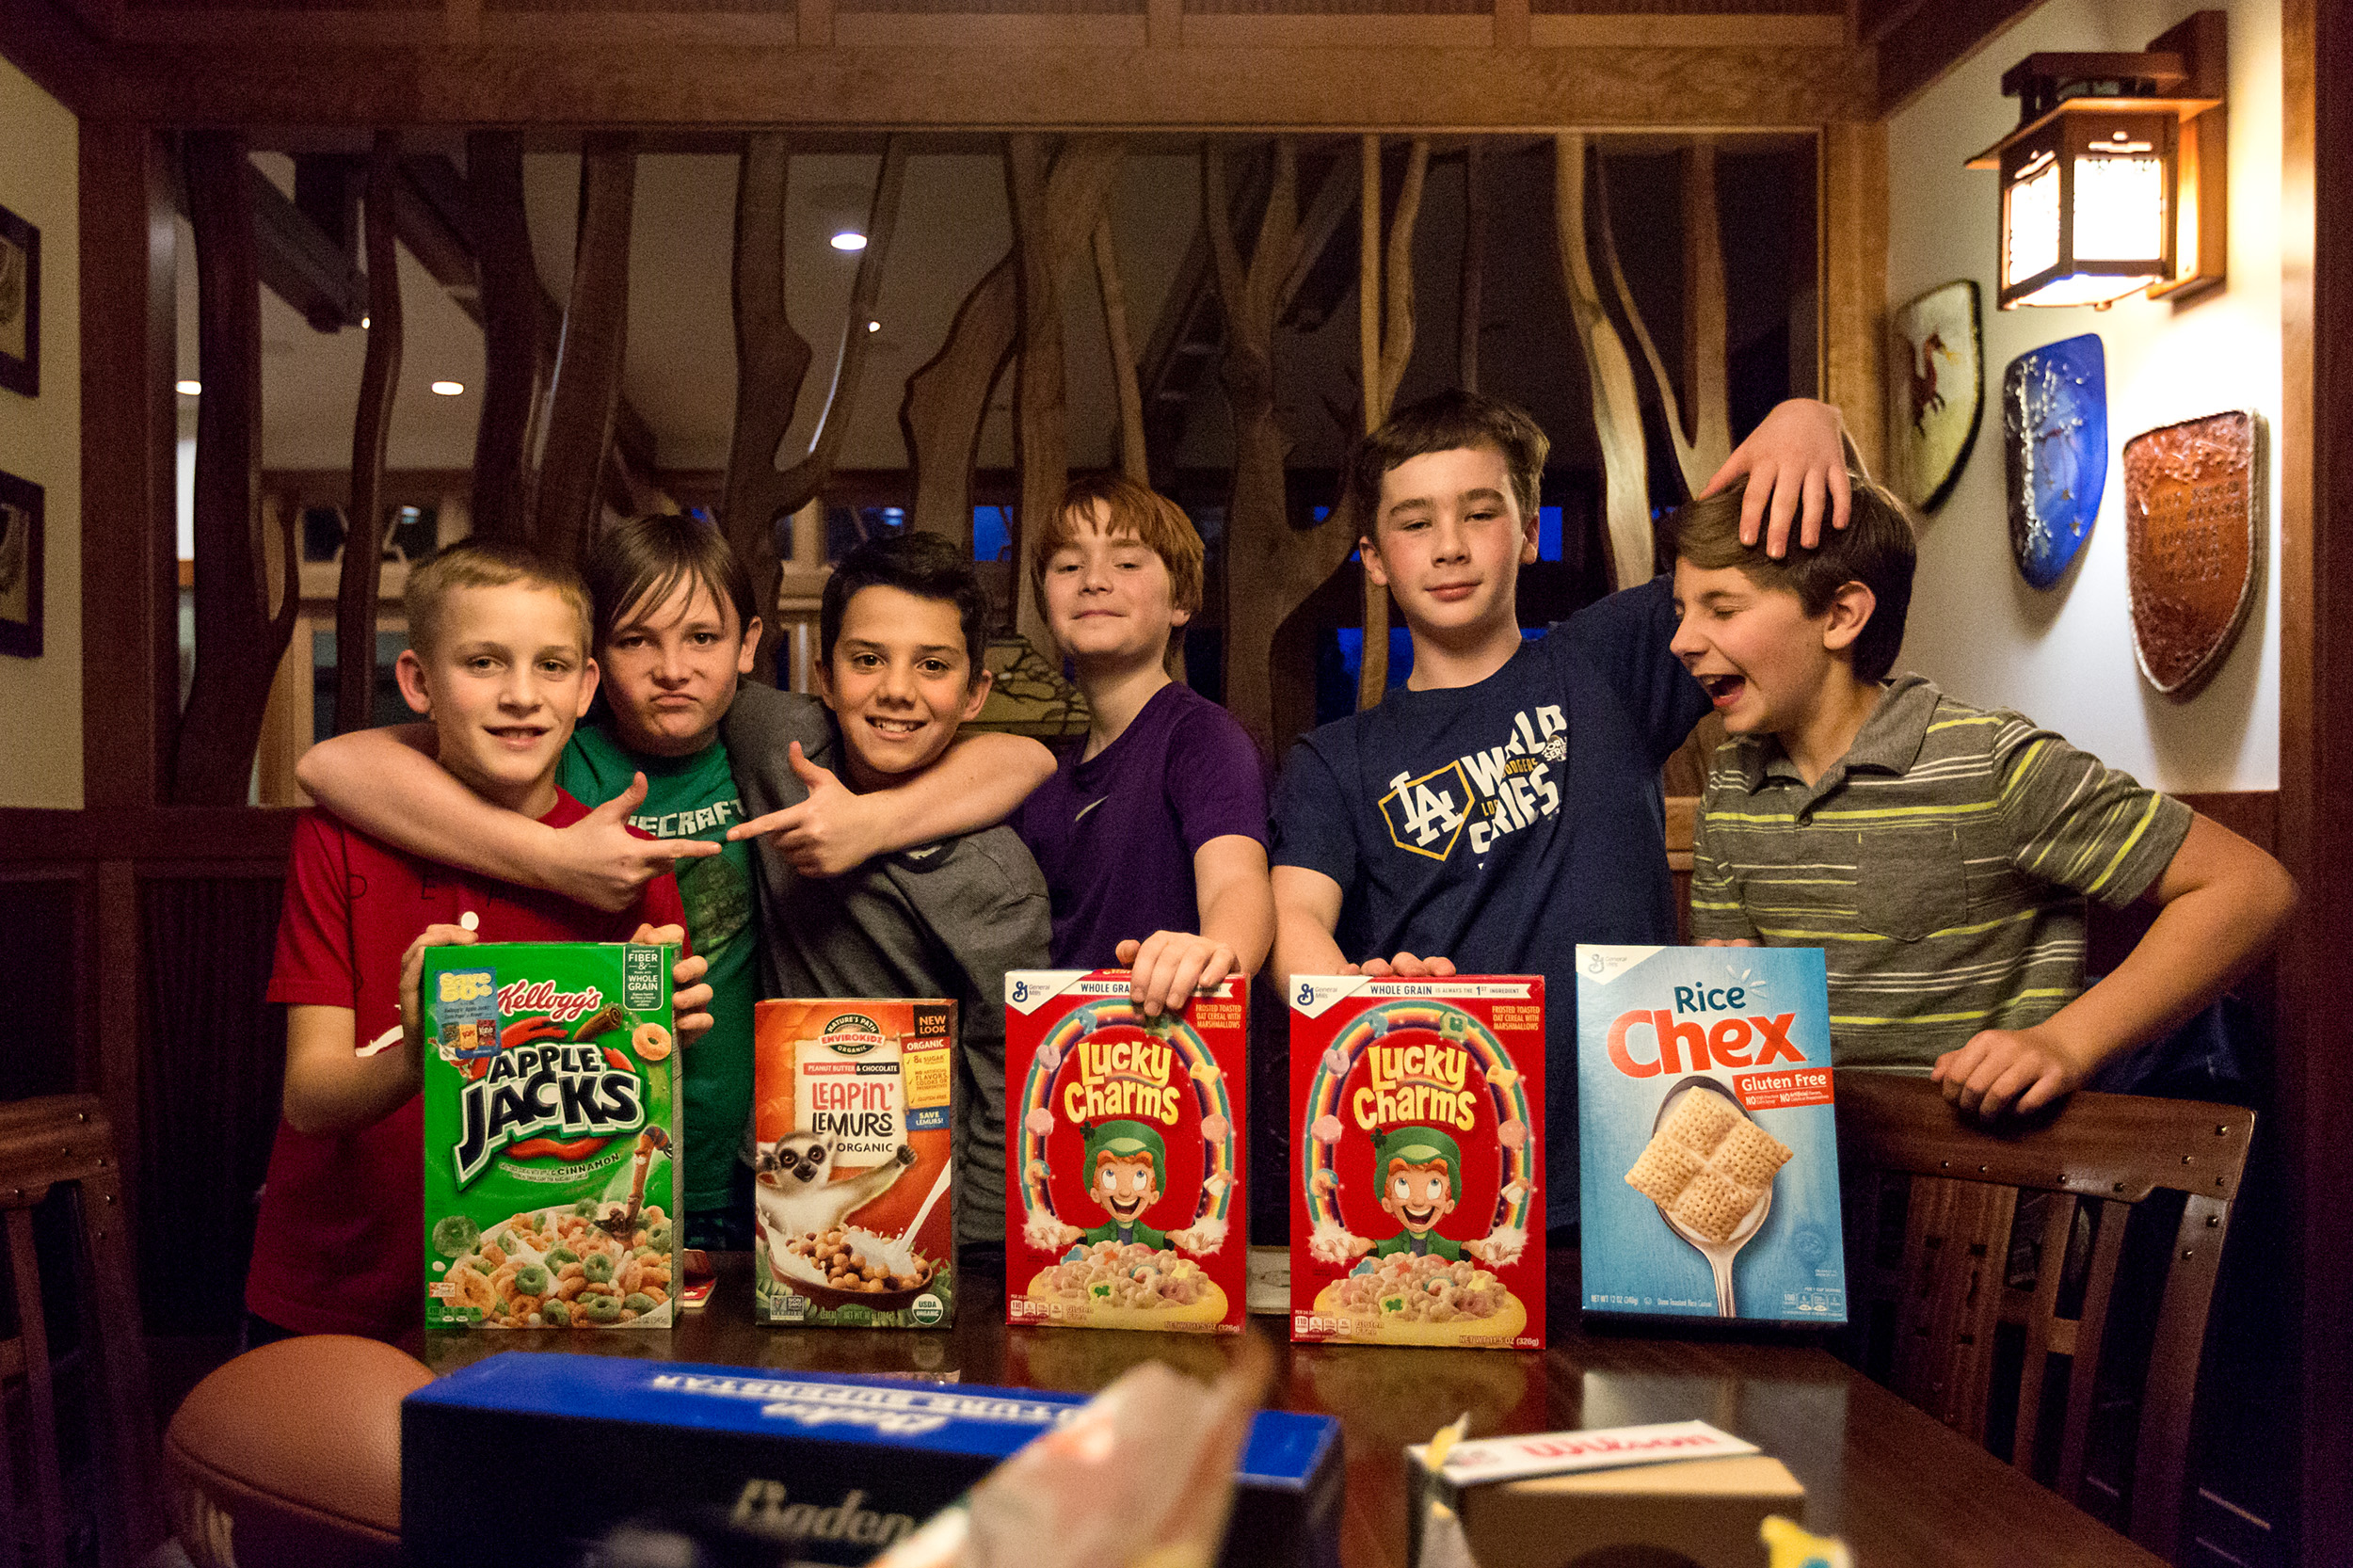 group of 6 tween boys stand with 5 boxes of cereal gifted as a gag gift